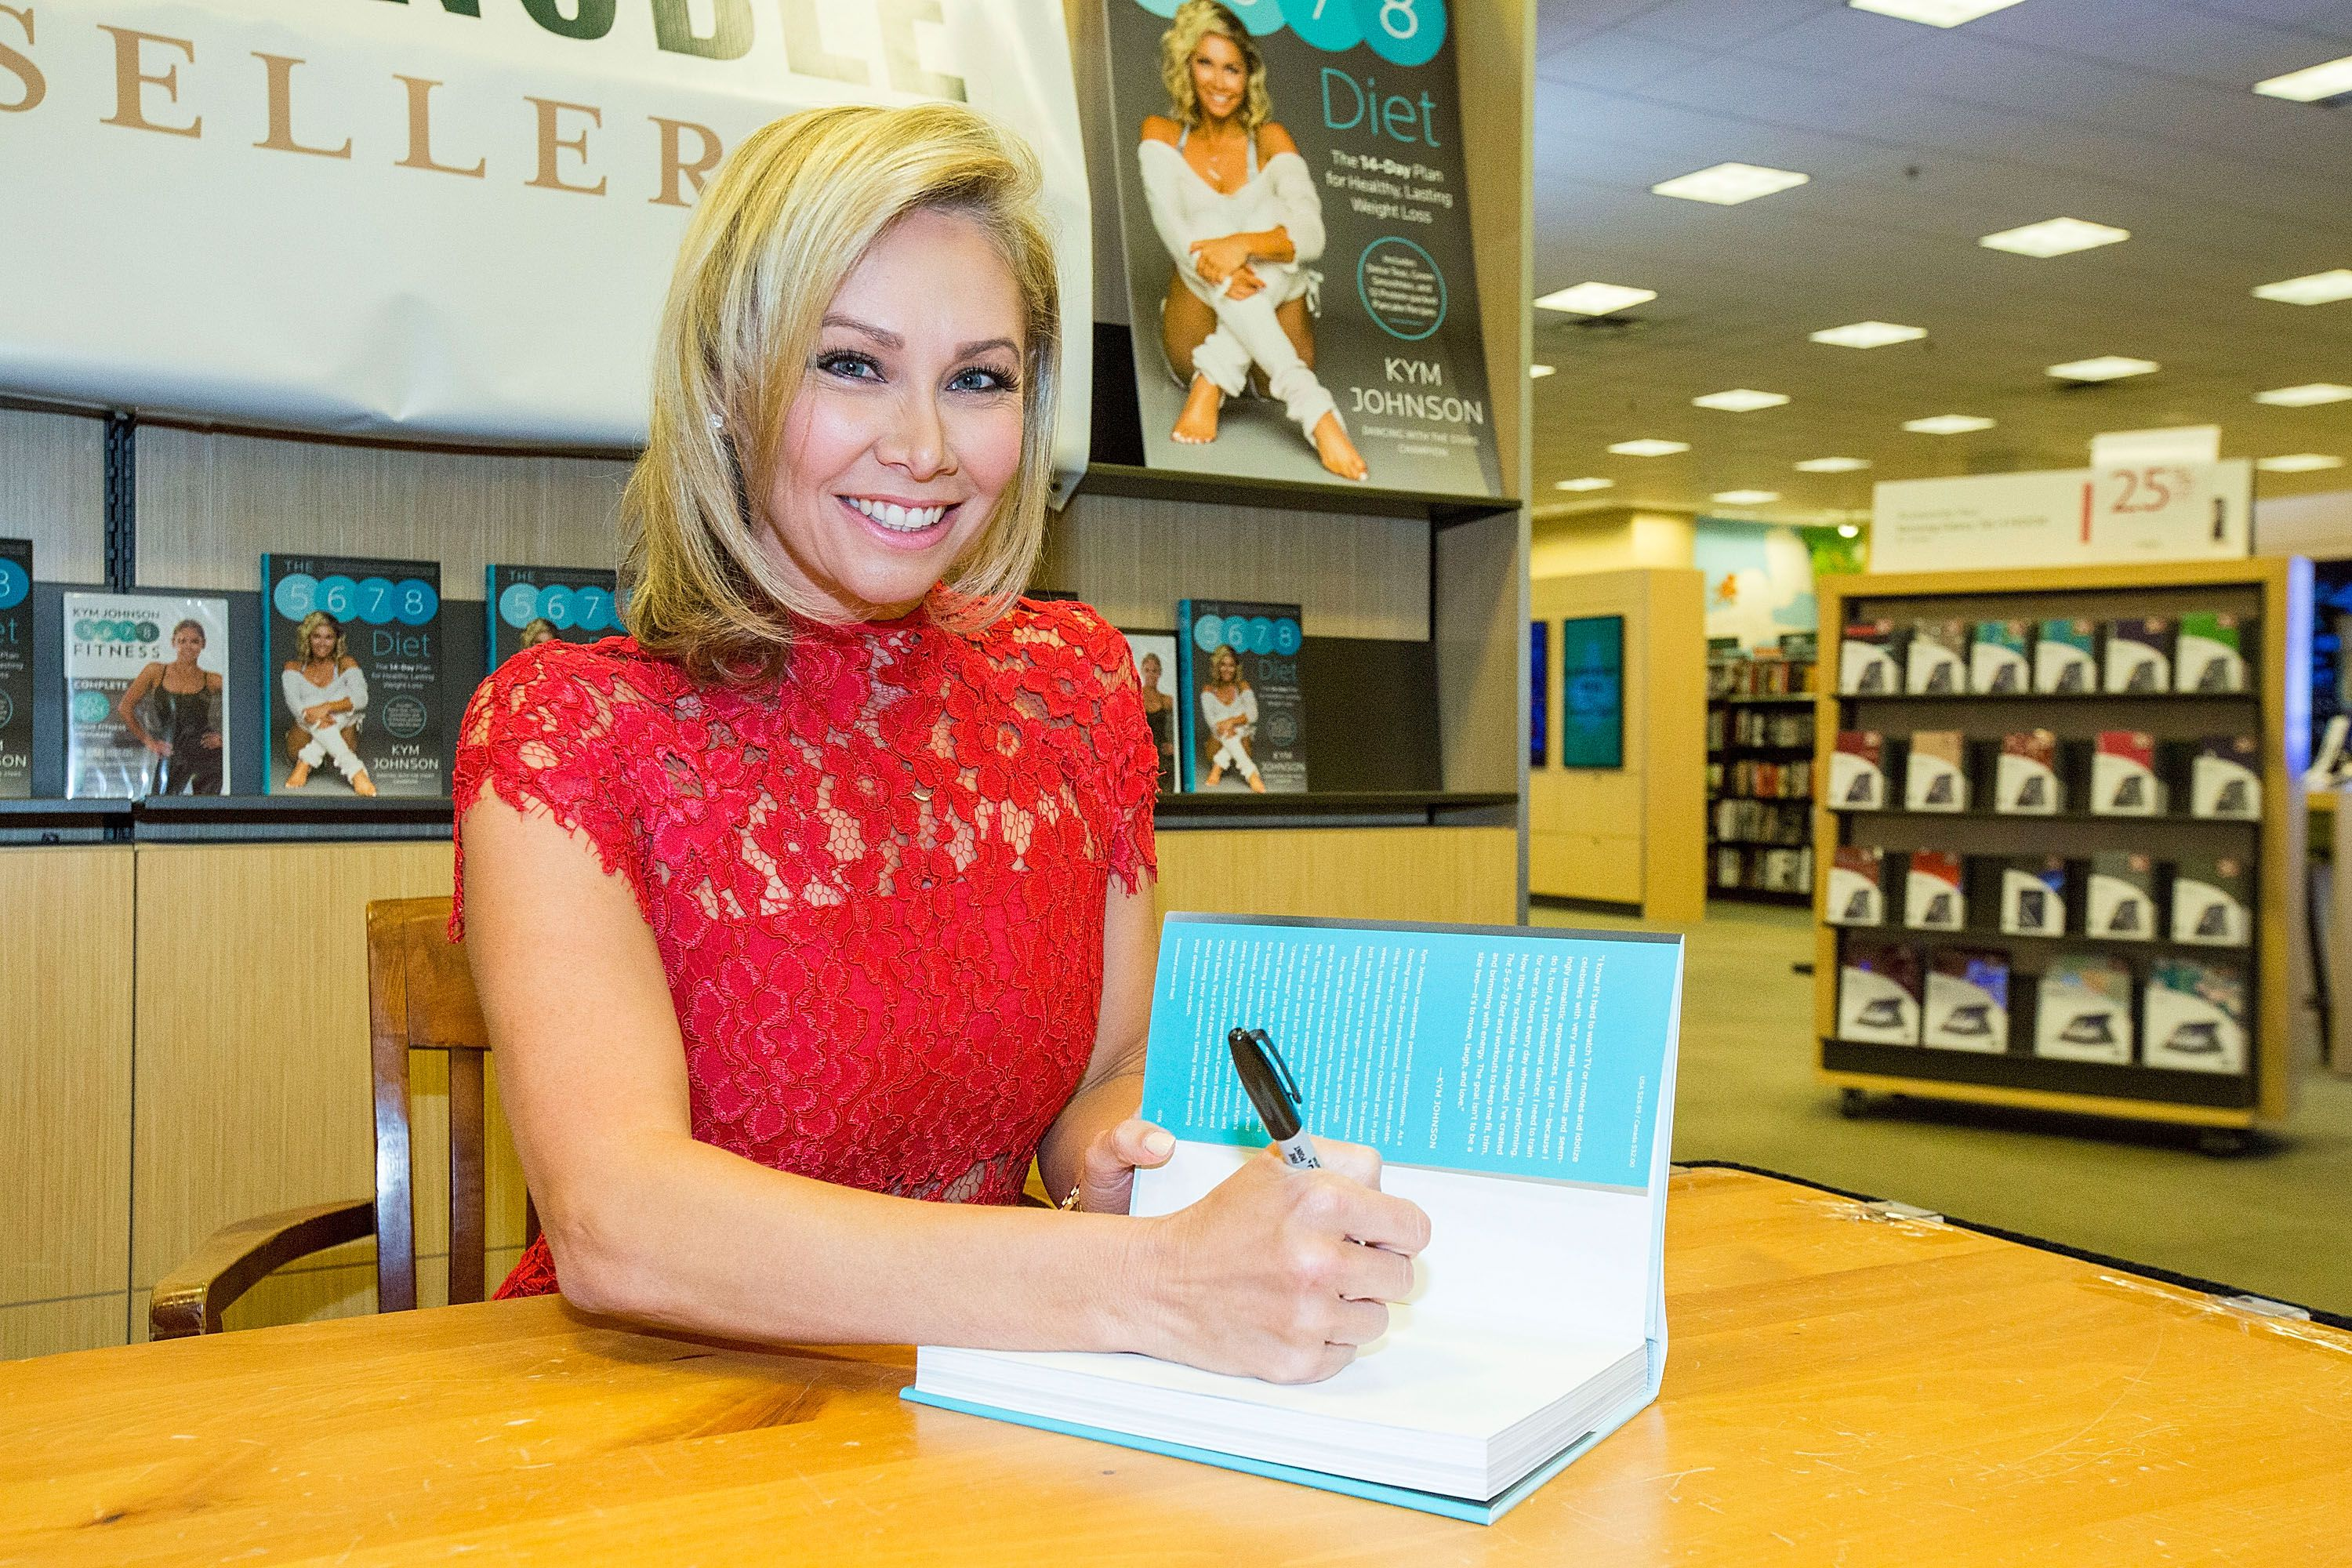 Kym Johnson Book Signing For 'The 5-6-7-8 Diet'